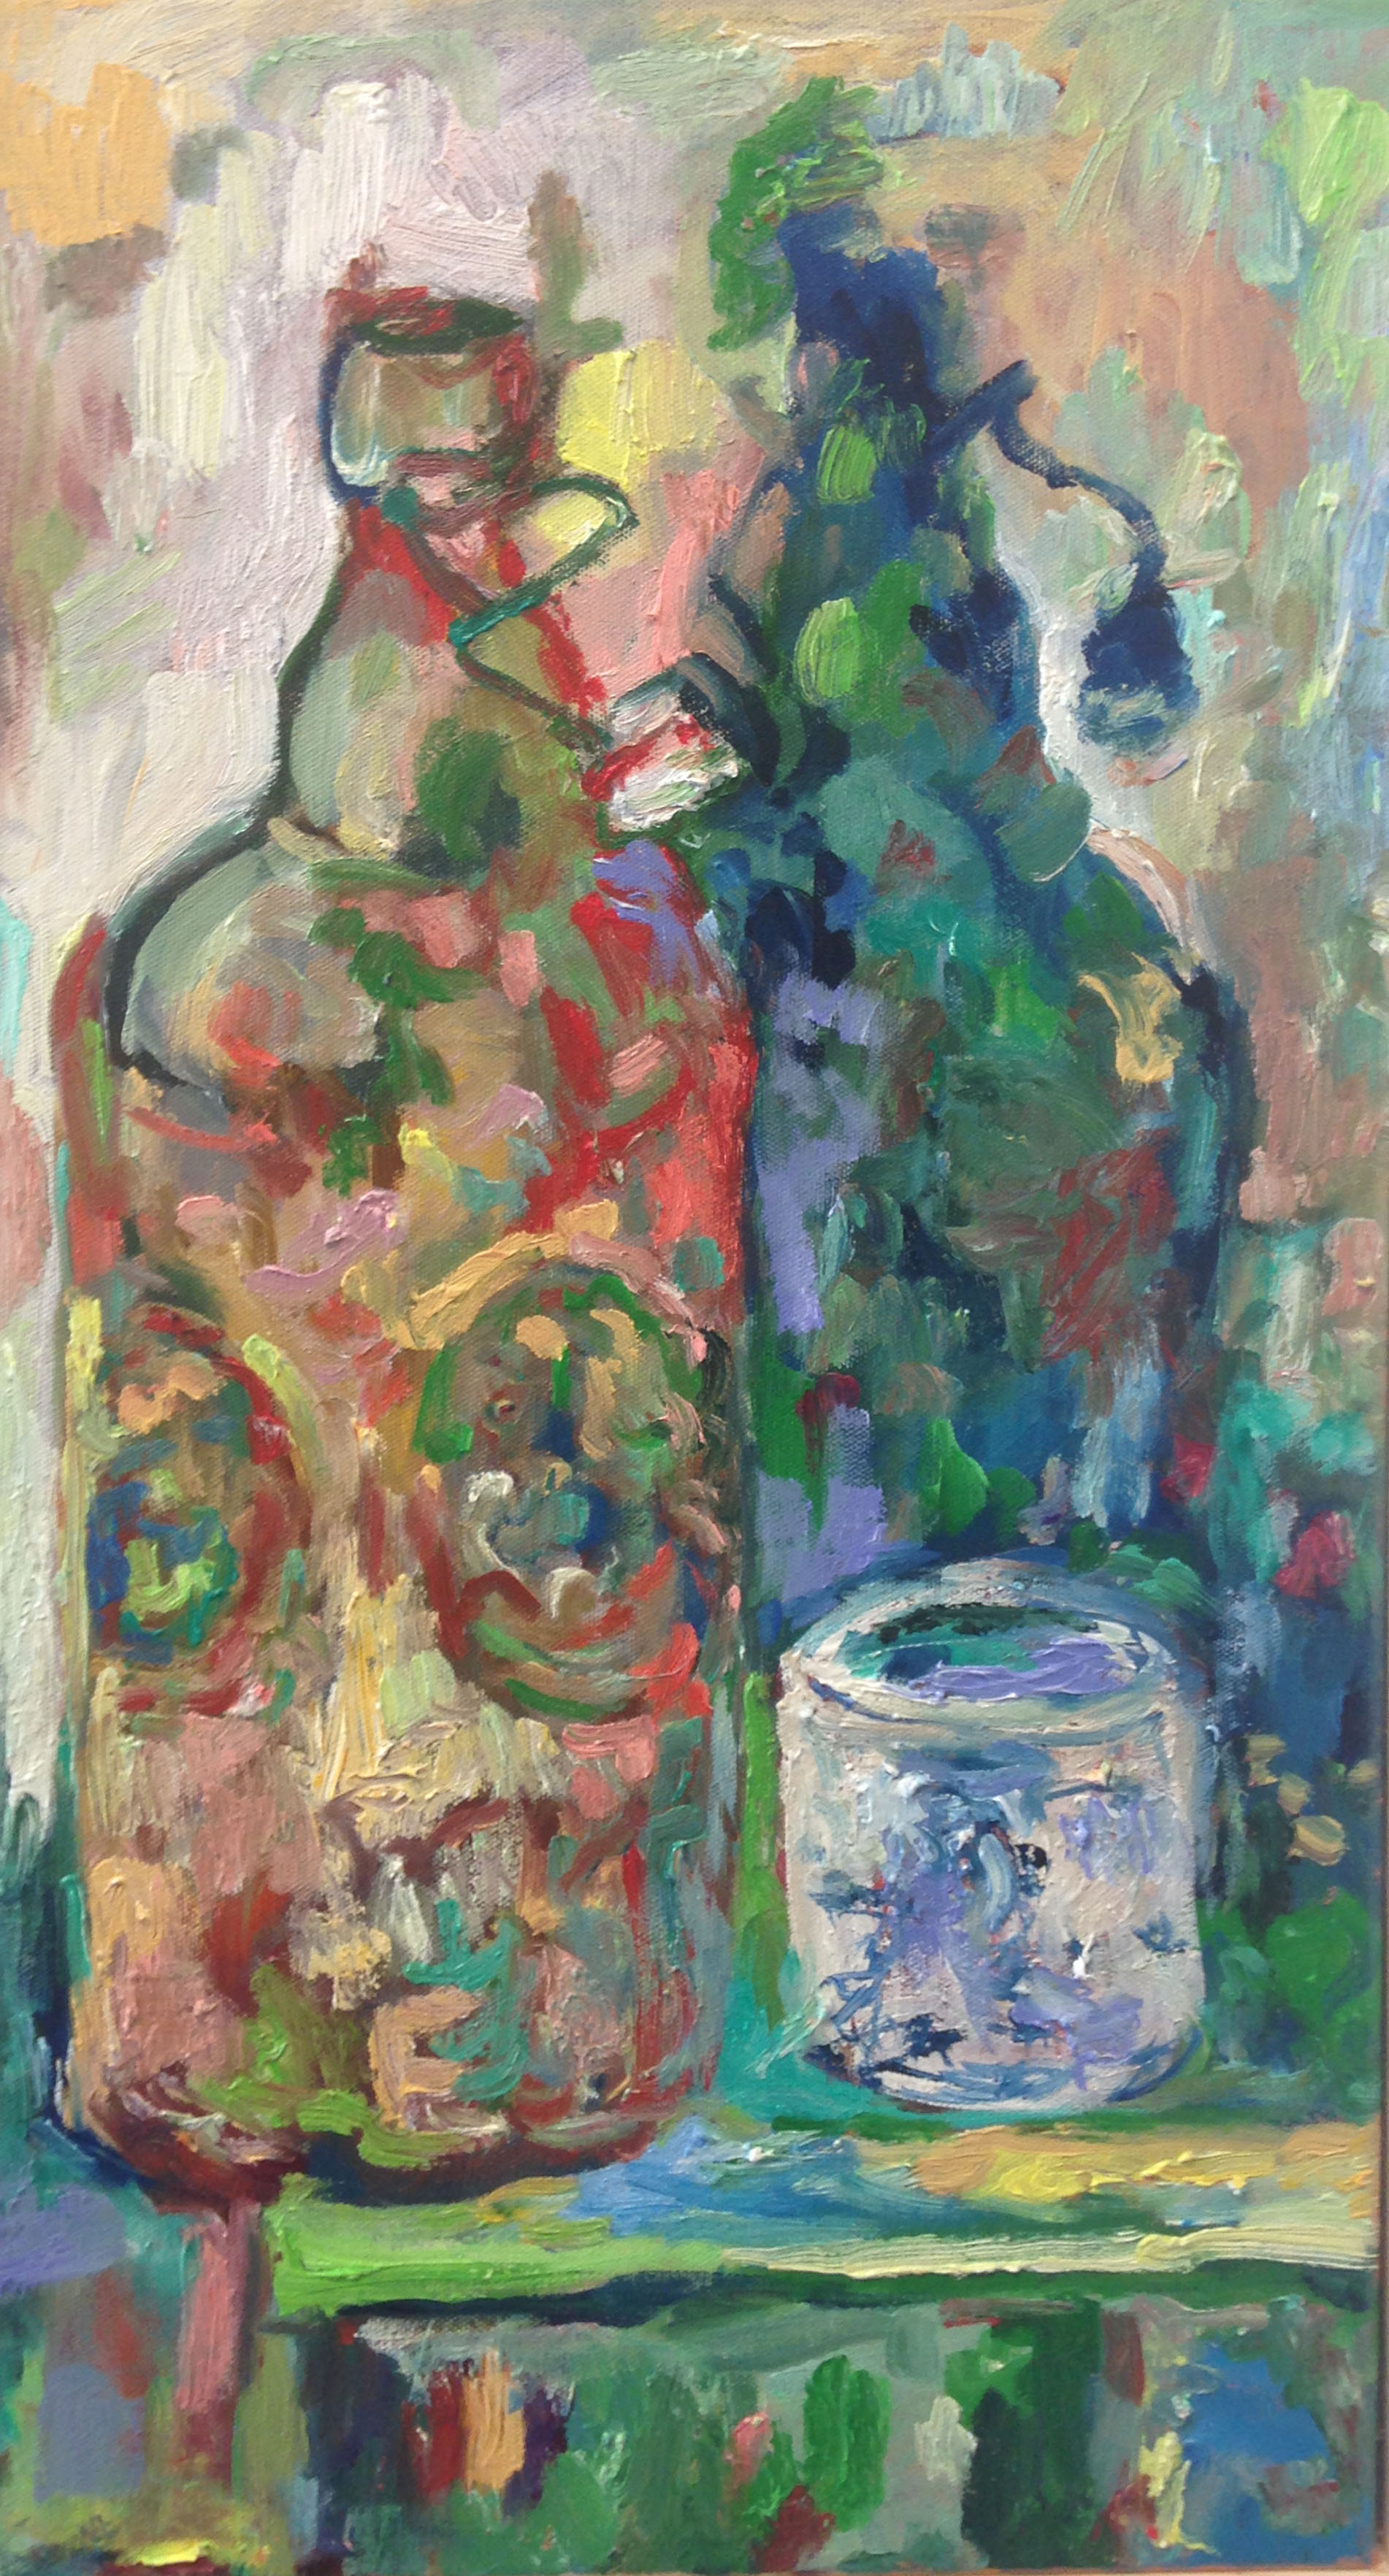 Belgian Glass (Oil Painting)